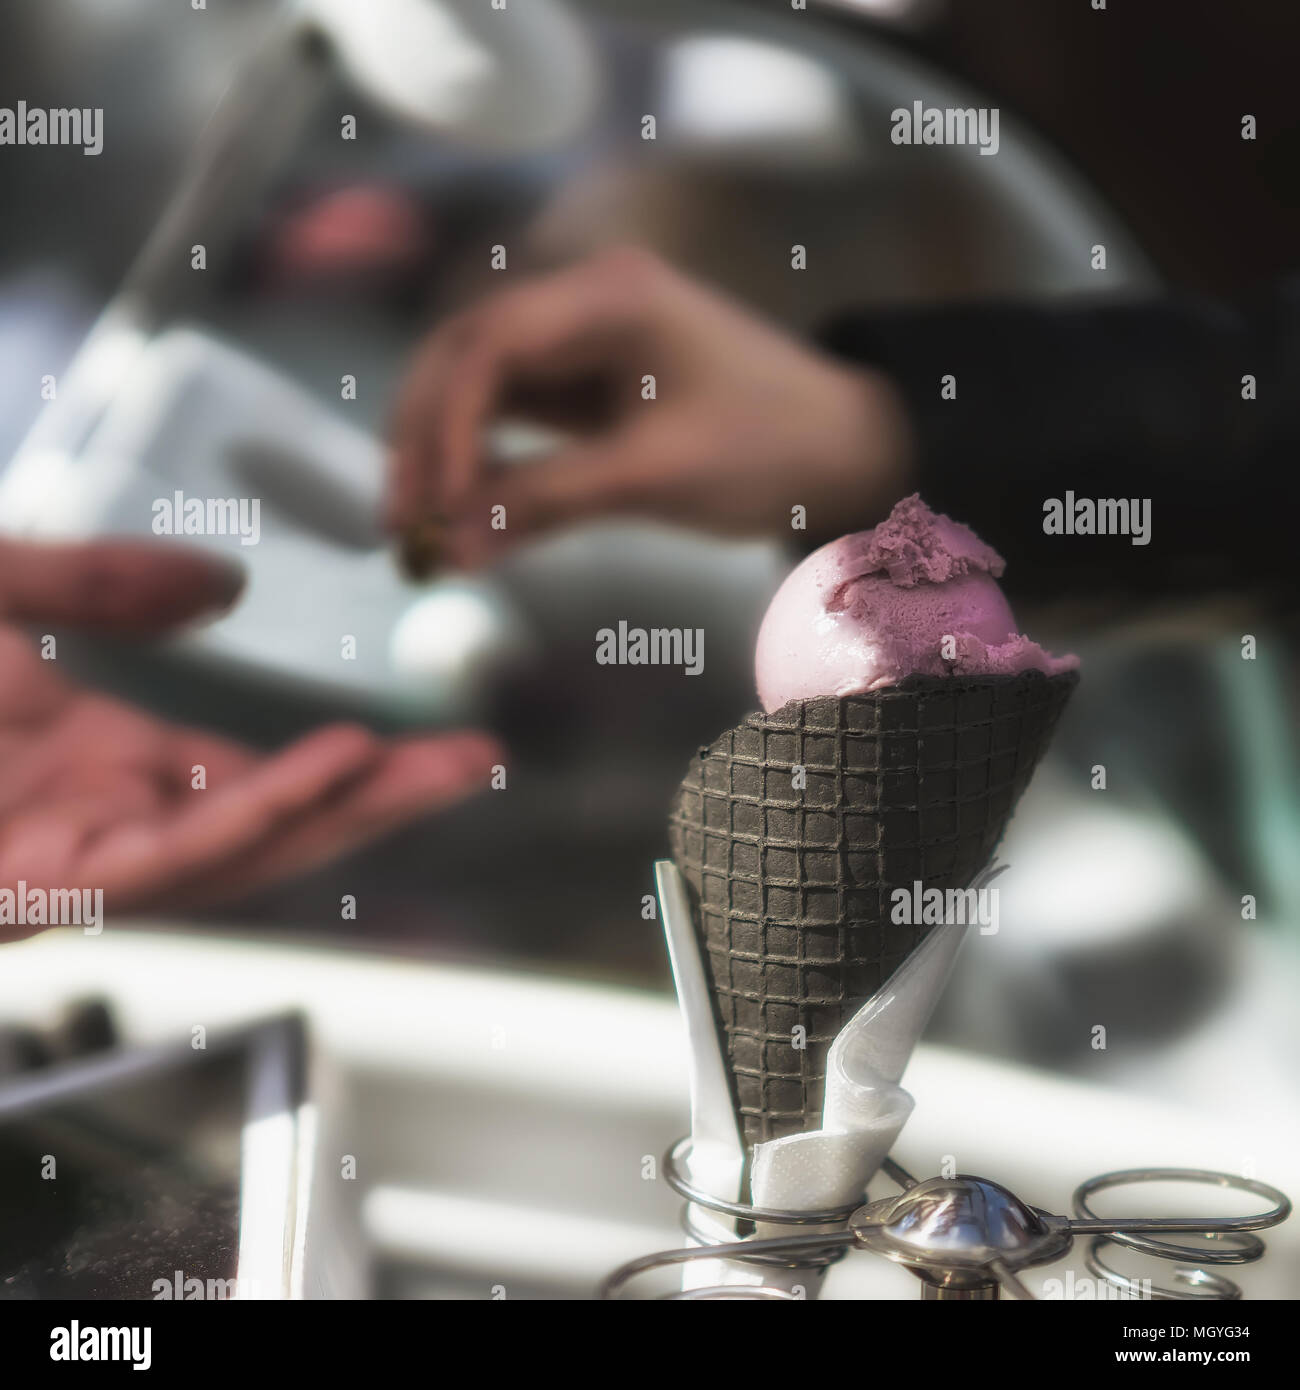 Stand for ice cream. Delicious fresh ice cream in black cone. Cash payment. Real scene in the store, Purchase - Stock Image